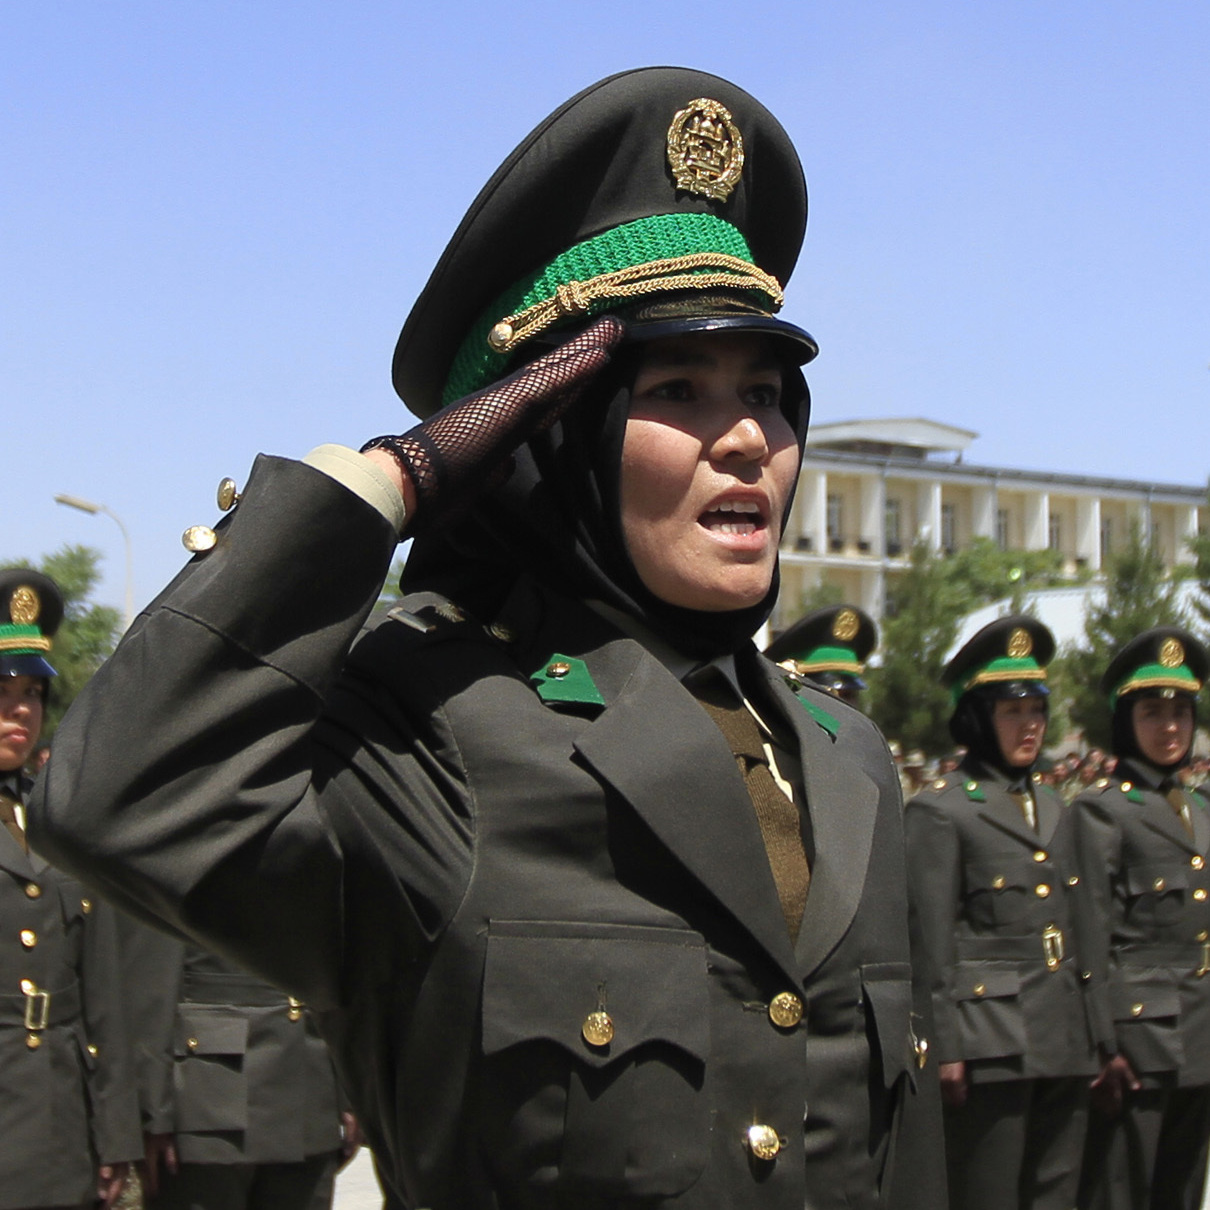 A female officer salutes during a graduation ceremony at the Kabul Military Training Center on June 13. Around 2,000 Afghan soldiers and officers, including 16 women, graduated.